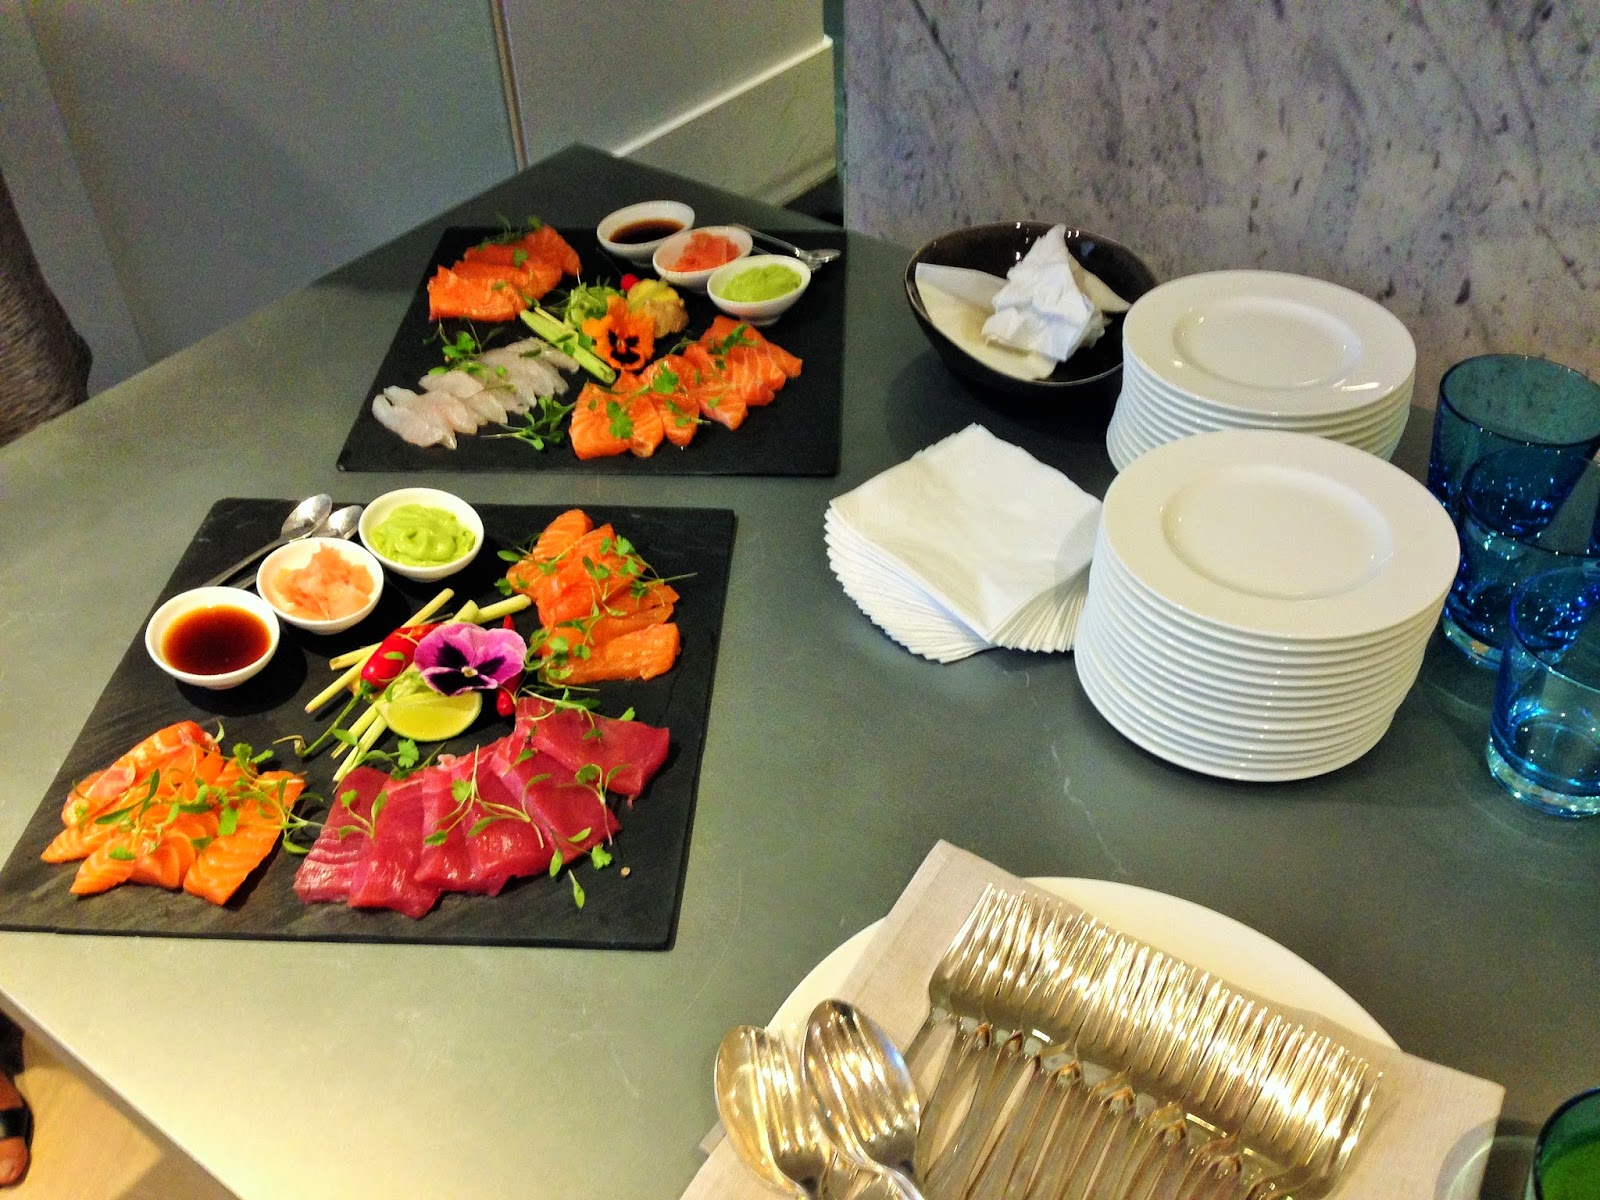 Sashimi at London Fashion Week